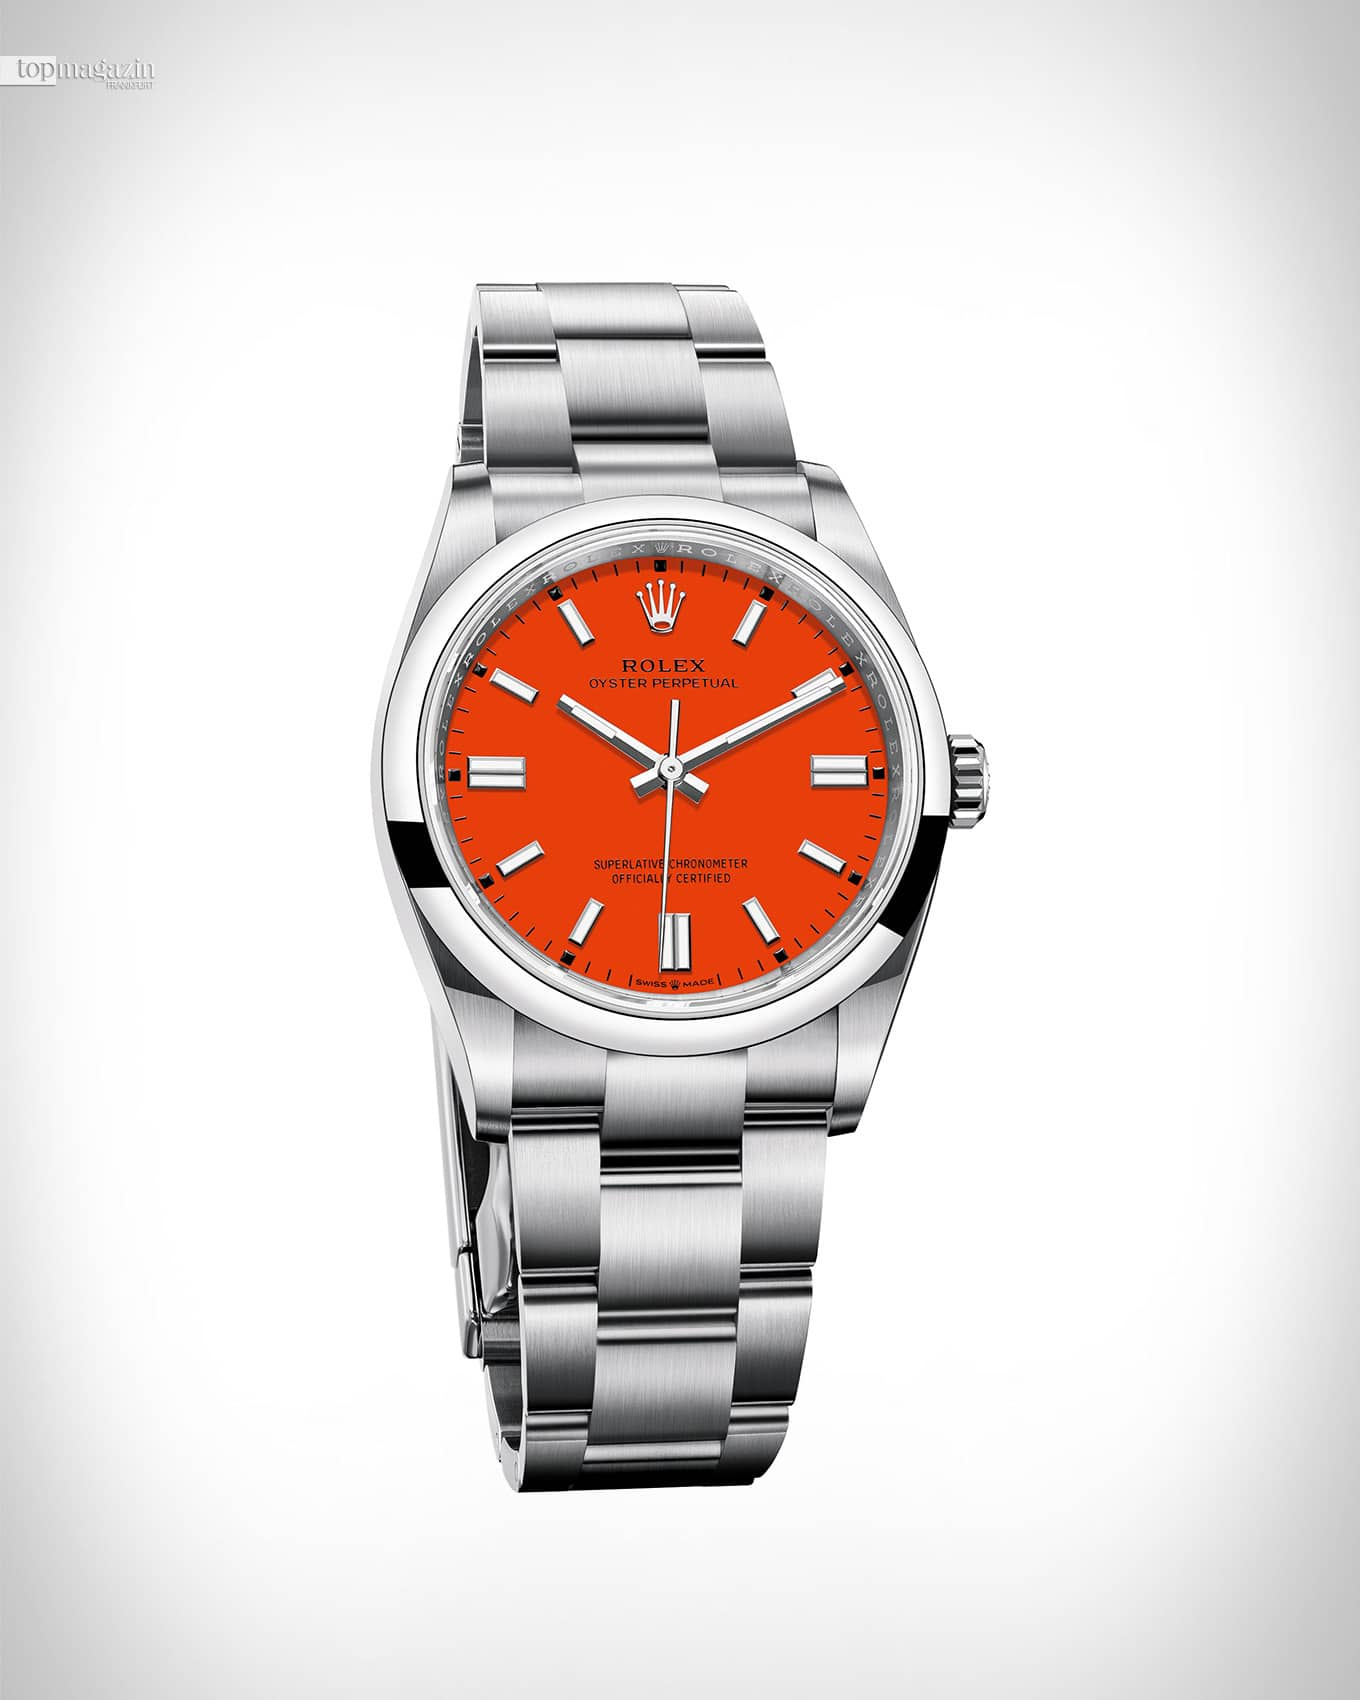 Rolex Oyster Perpetual 36 - Korallenrot